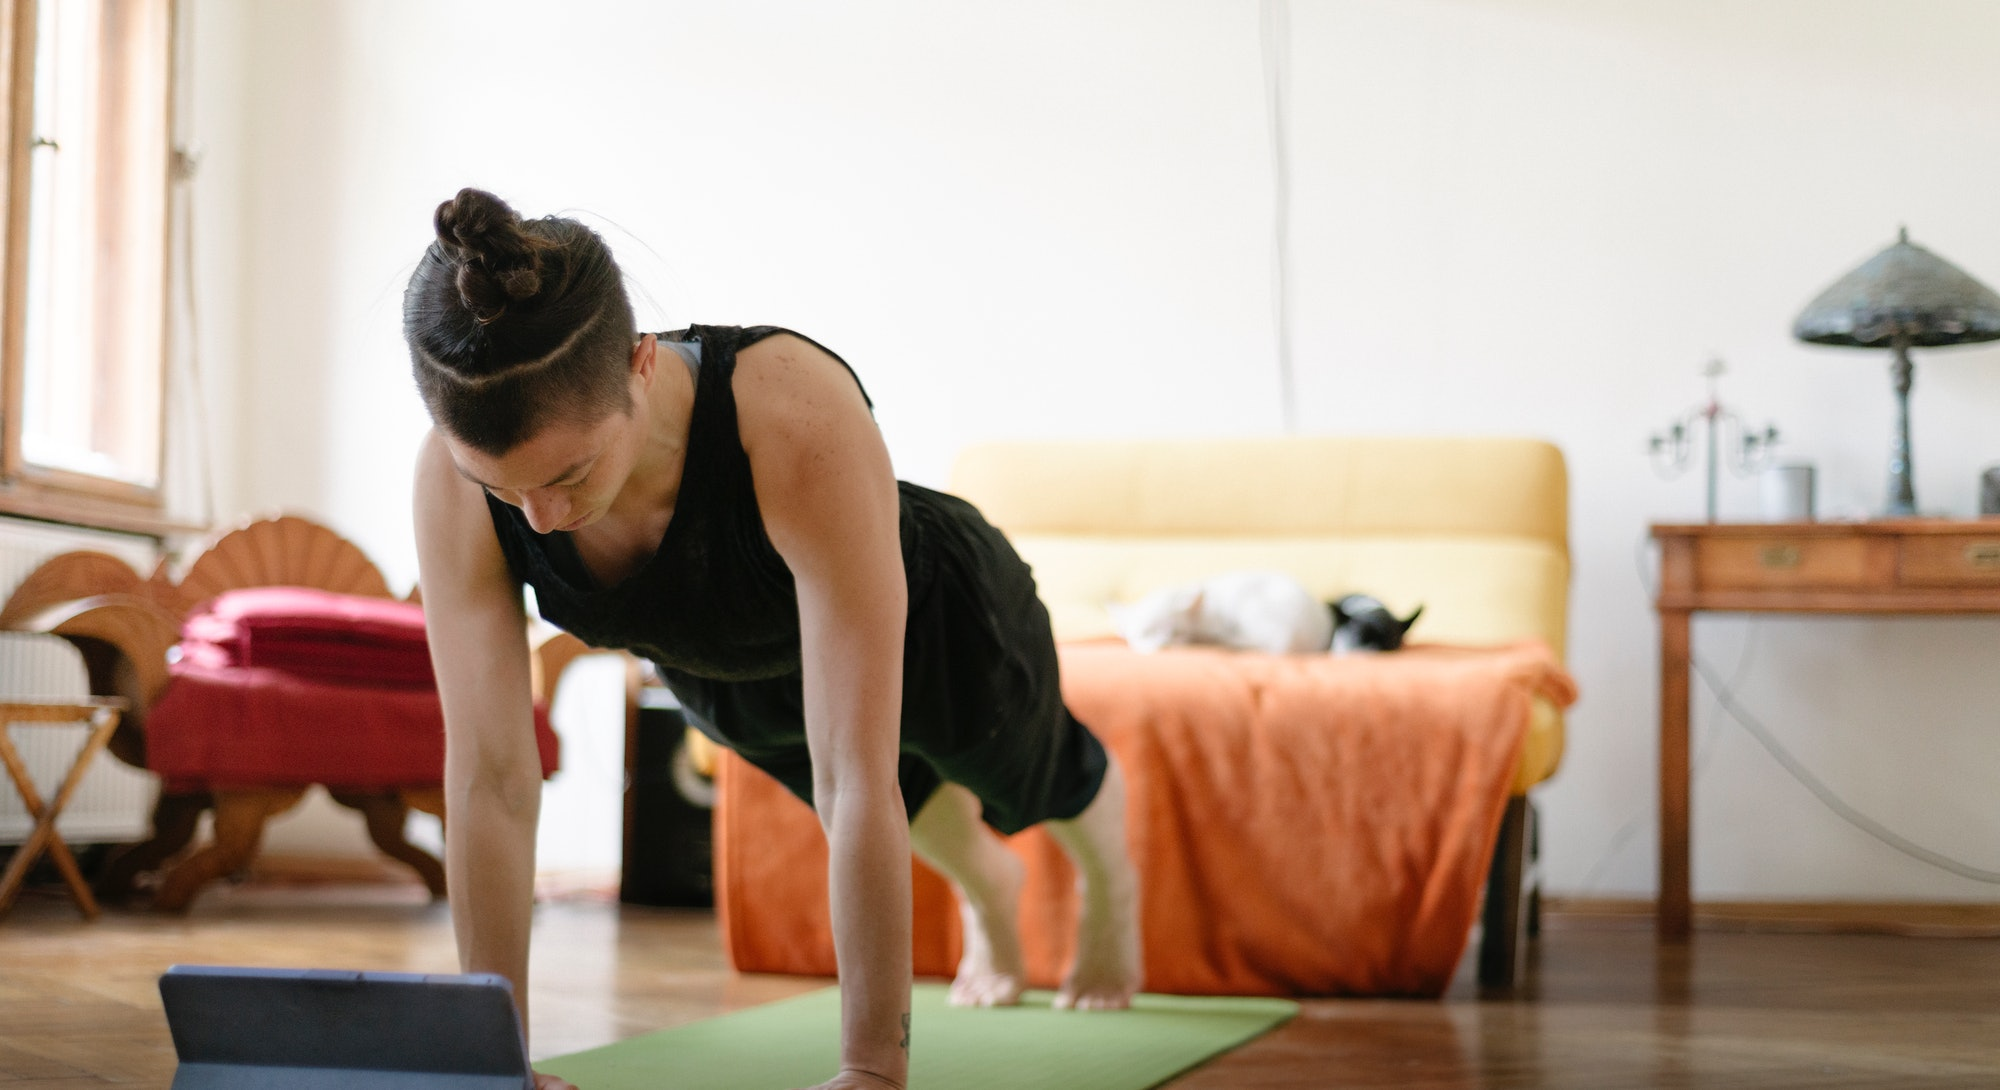 A woman works out watching a video on her iPad. Apple launched Fitness+, a new virtual streaming workout service for Apple Watch.